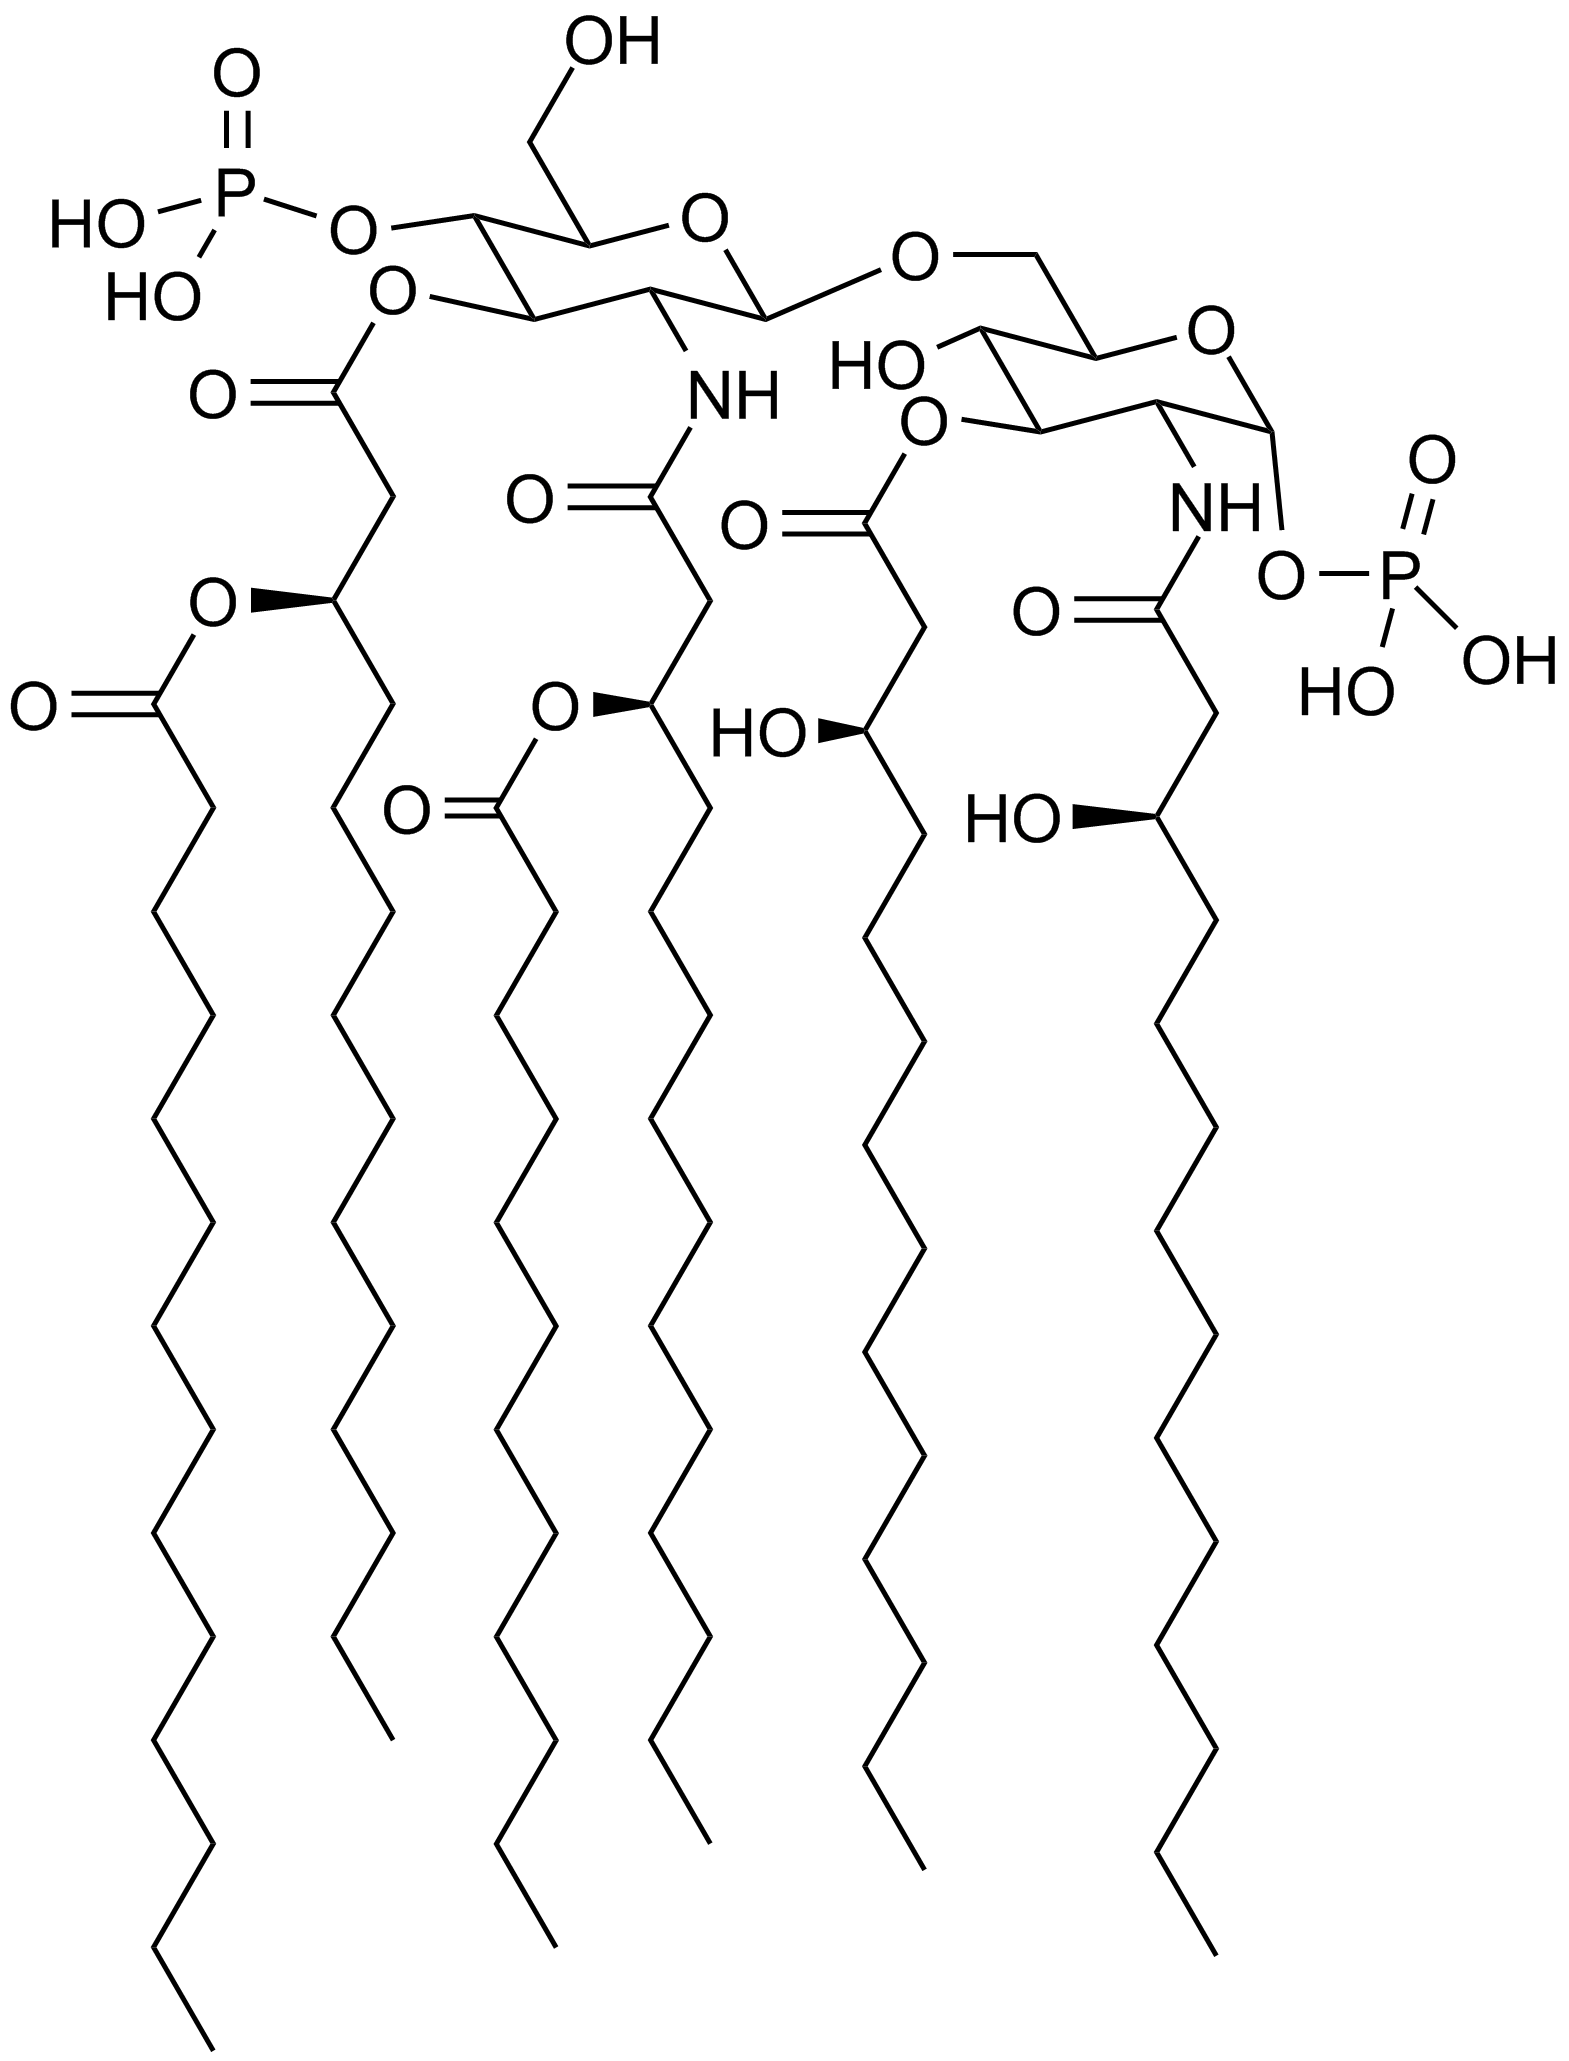 Does anyone have experience with analyzing Lipid A by RP